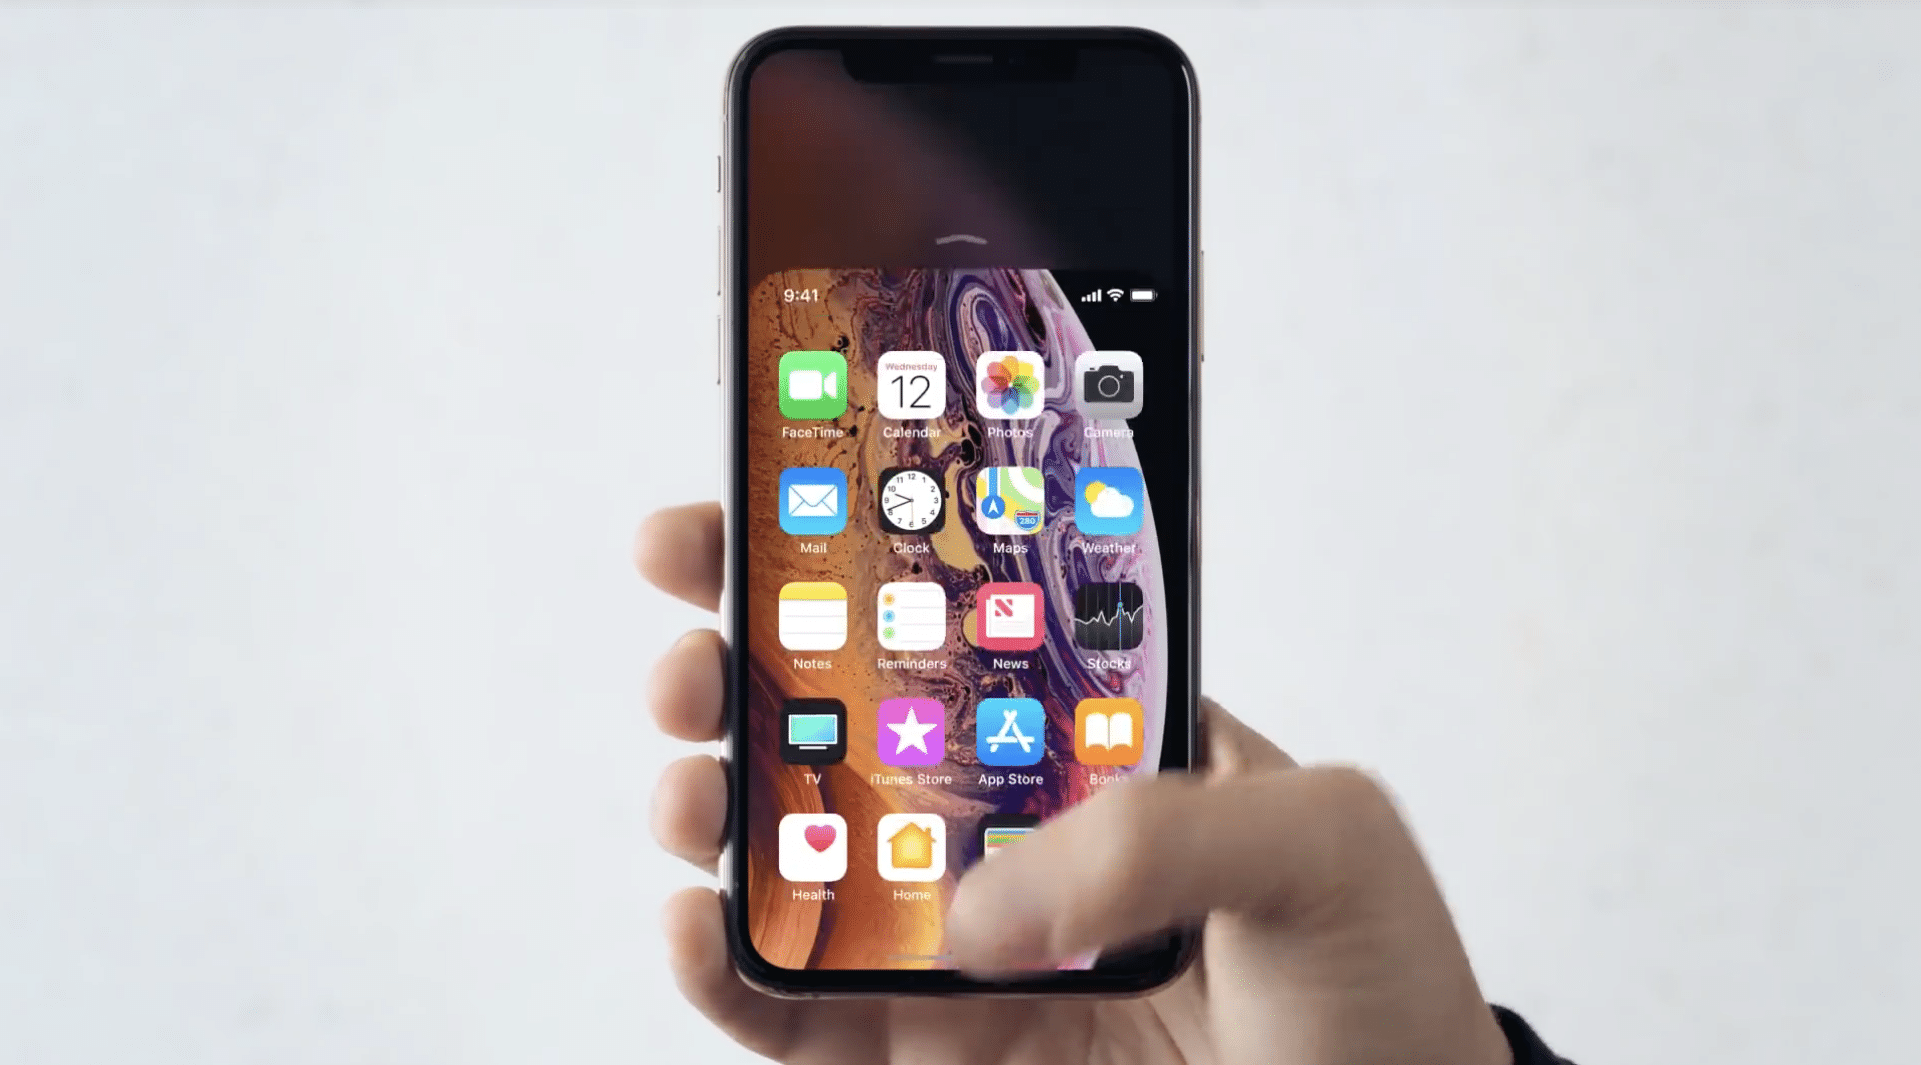 iPhone XS iPhone XS Max, and iPhone XR — Guided Tour 2